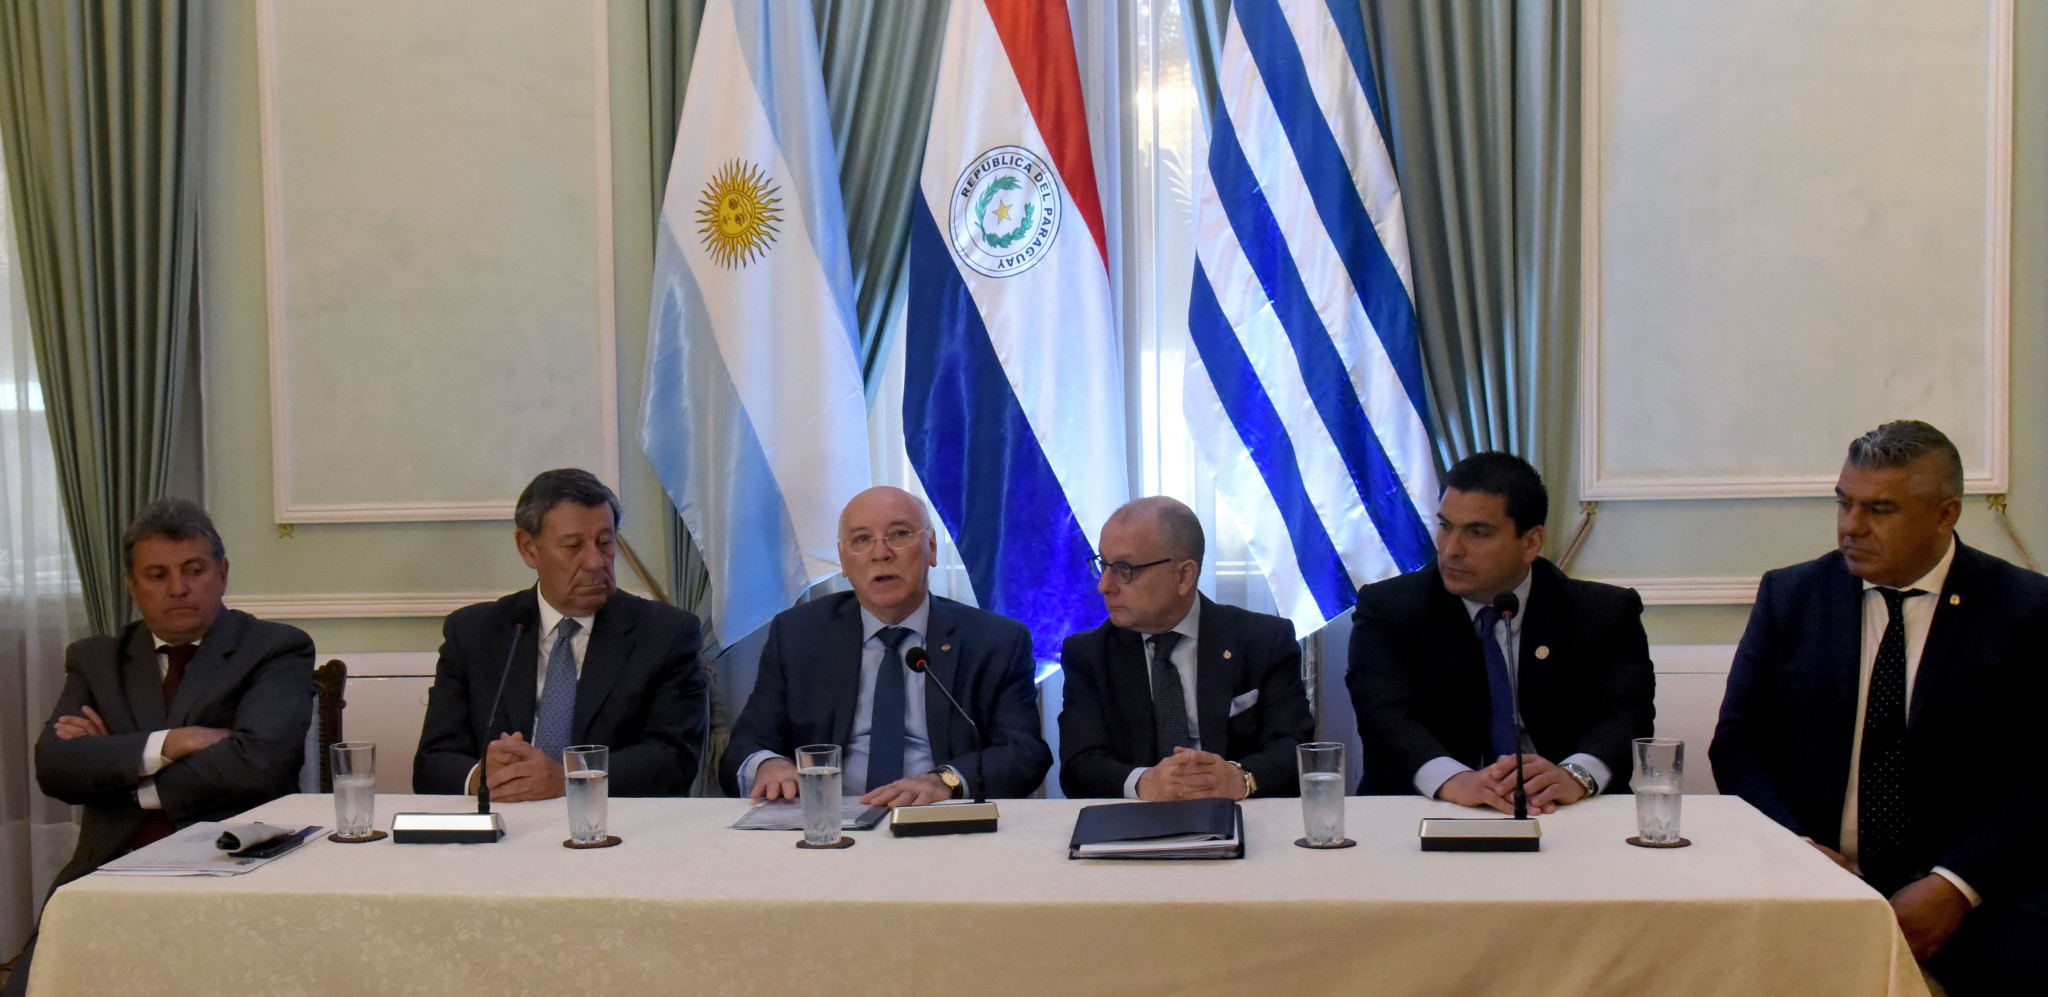 Argentina, Uruguay and Paraguay to promote 2030 World Cup bid at Russia 2018